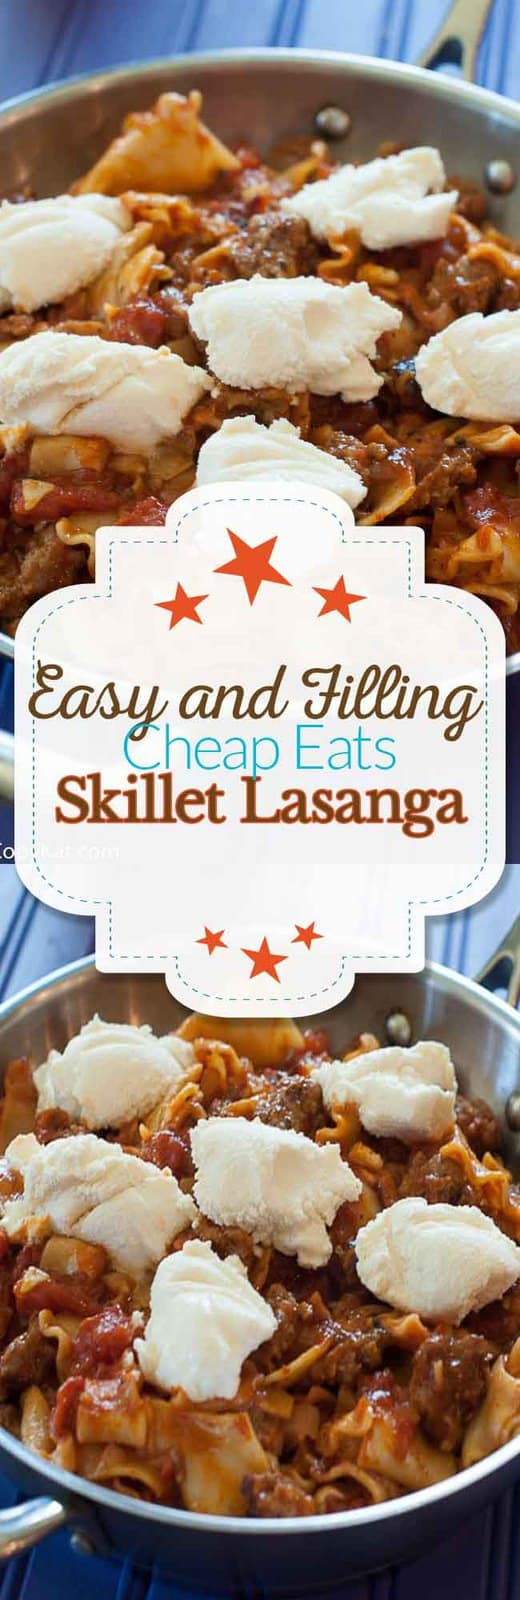 Make this easy to prepare skillet lasagna for an inexpensive meal your family will love.